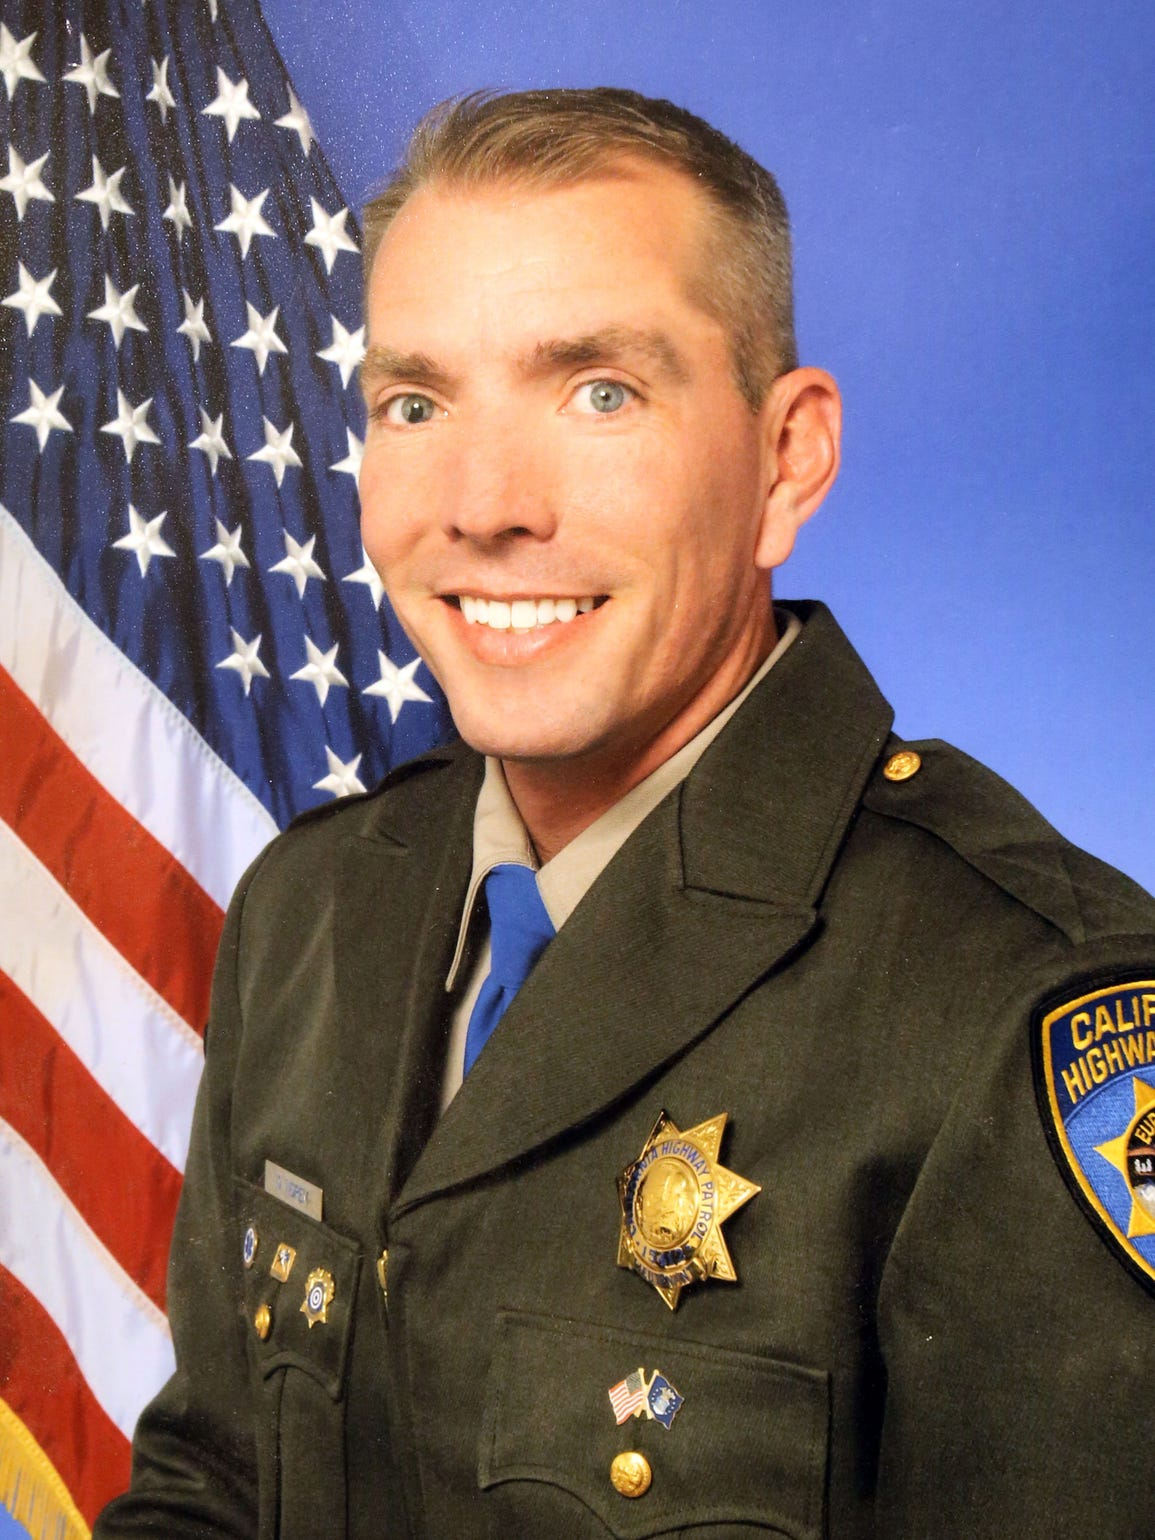 Officer Dane Norem, California Highway Patrol portrait